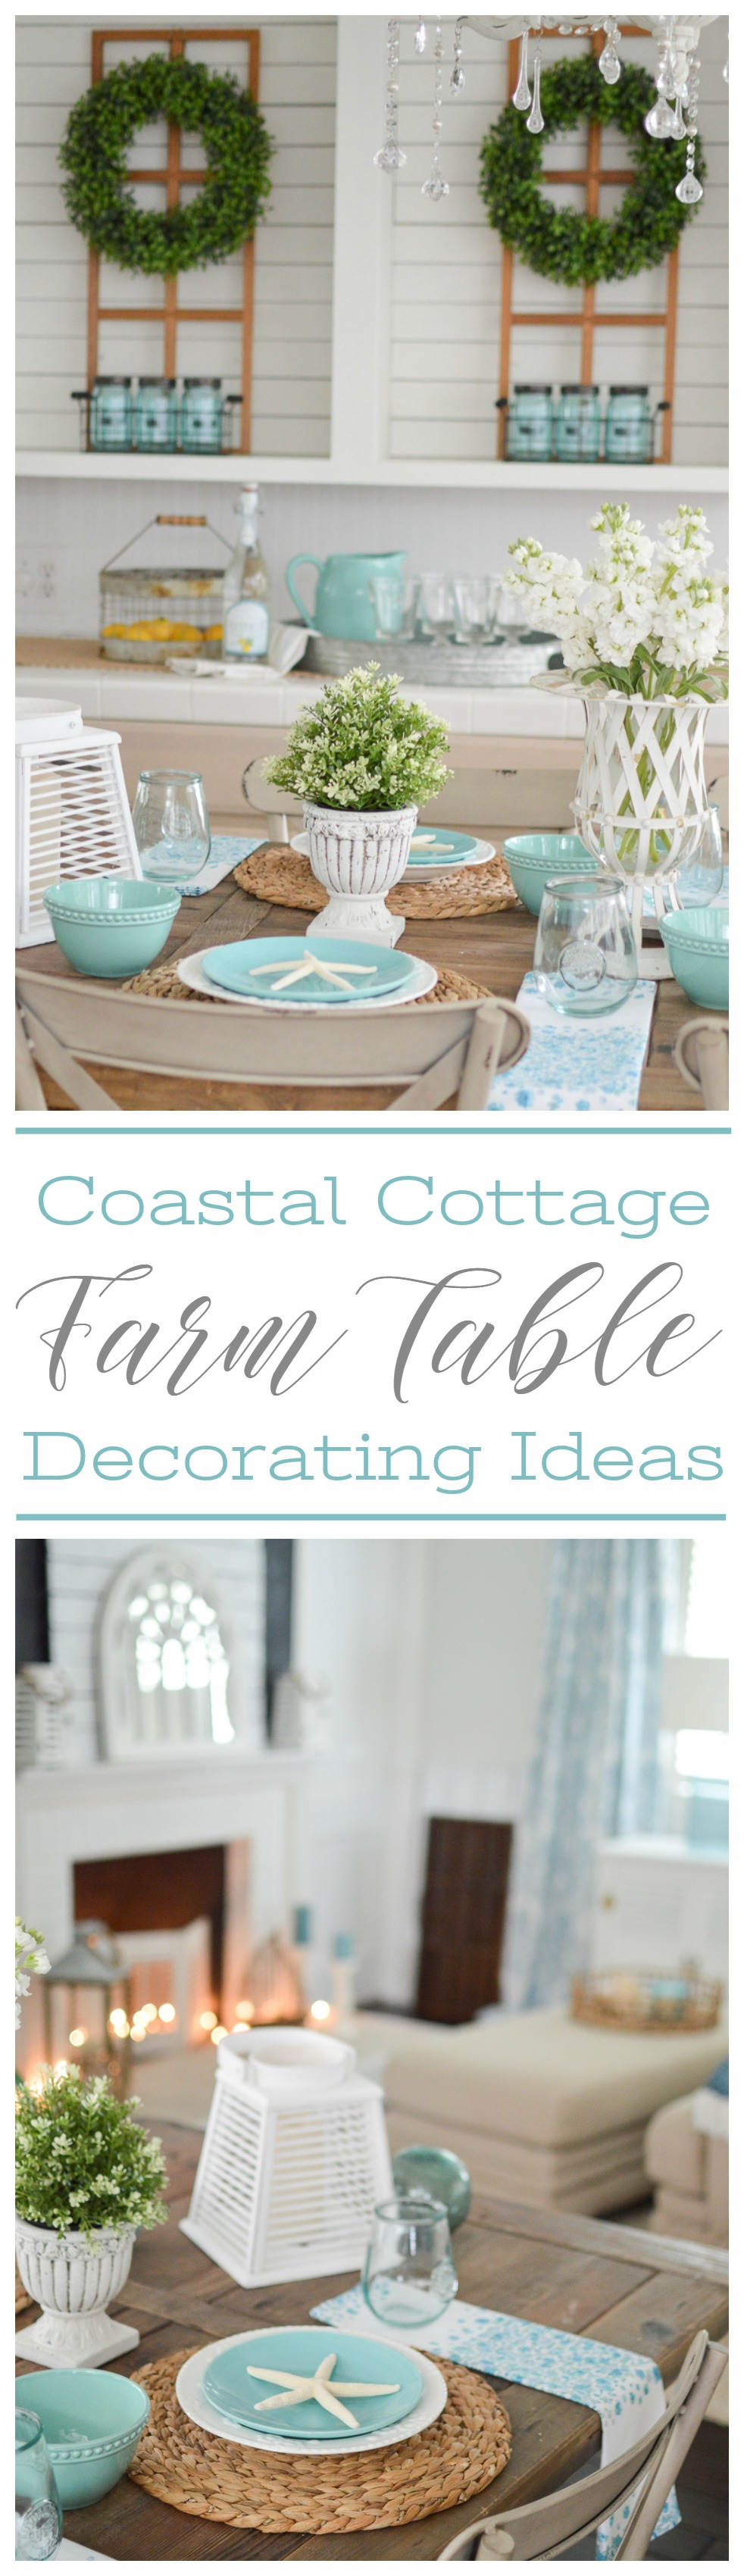 Coastal Cottage Farm Table Decorating Ideas - www.foxhollowcottage.com - Summer Tablescape